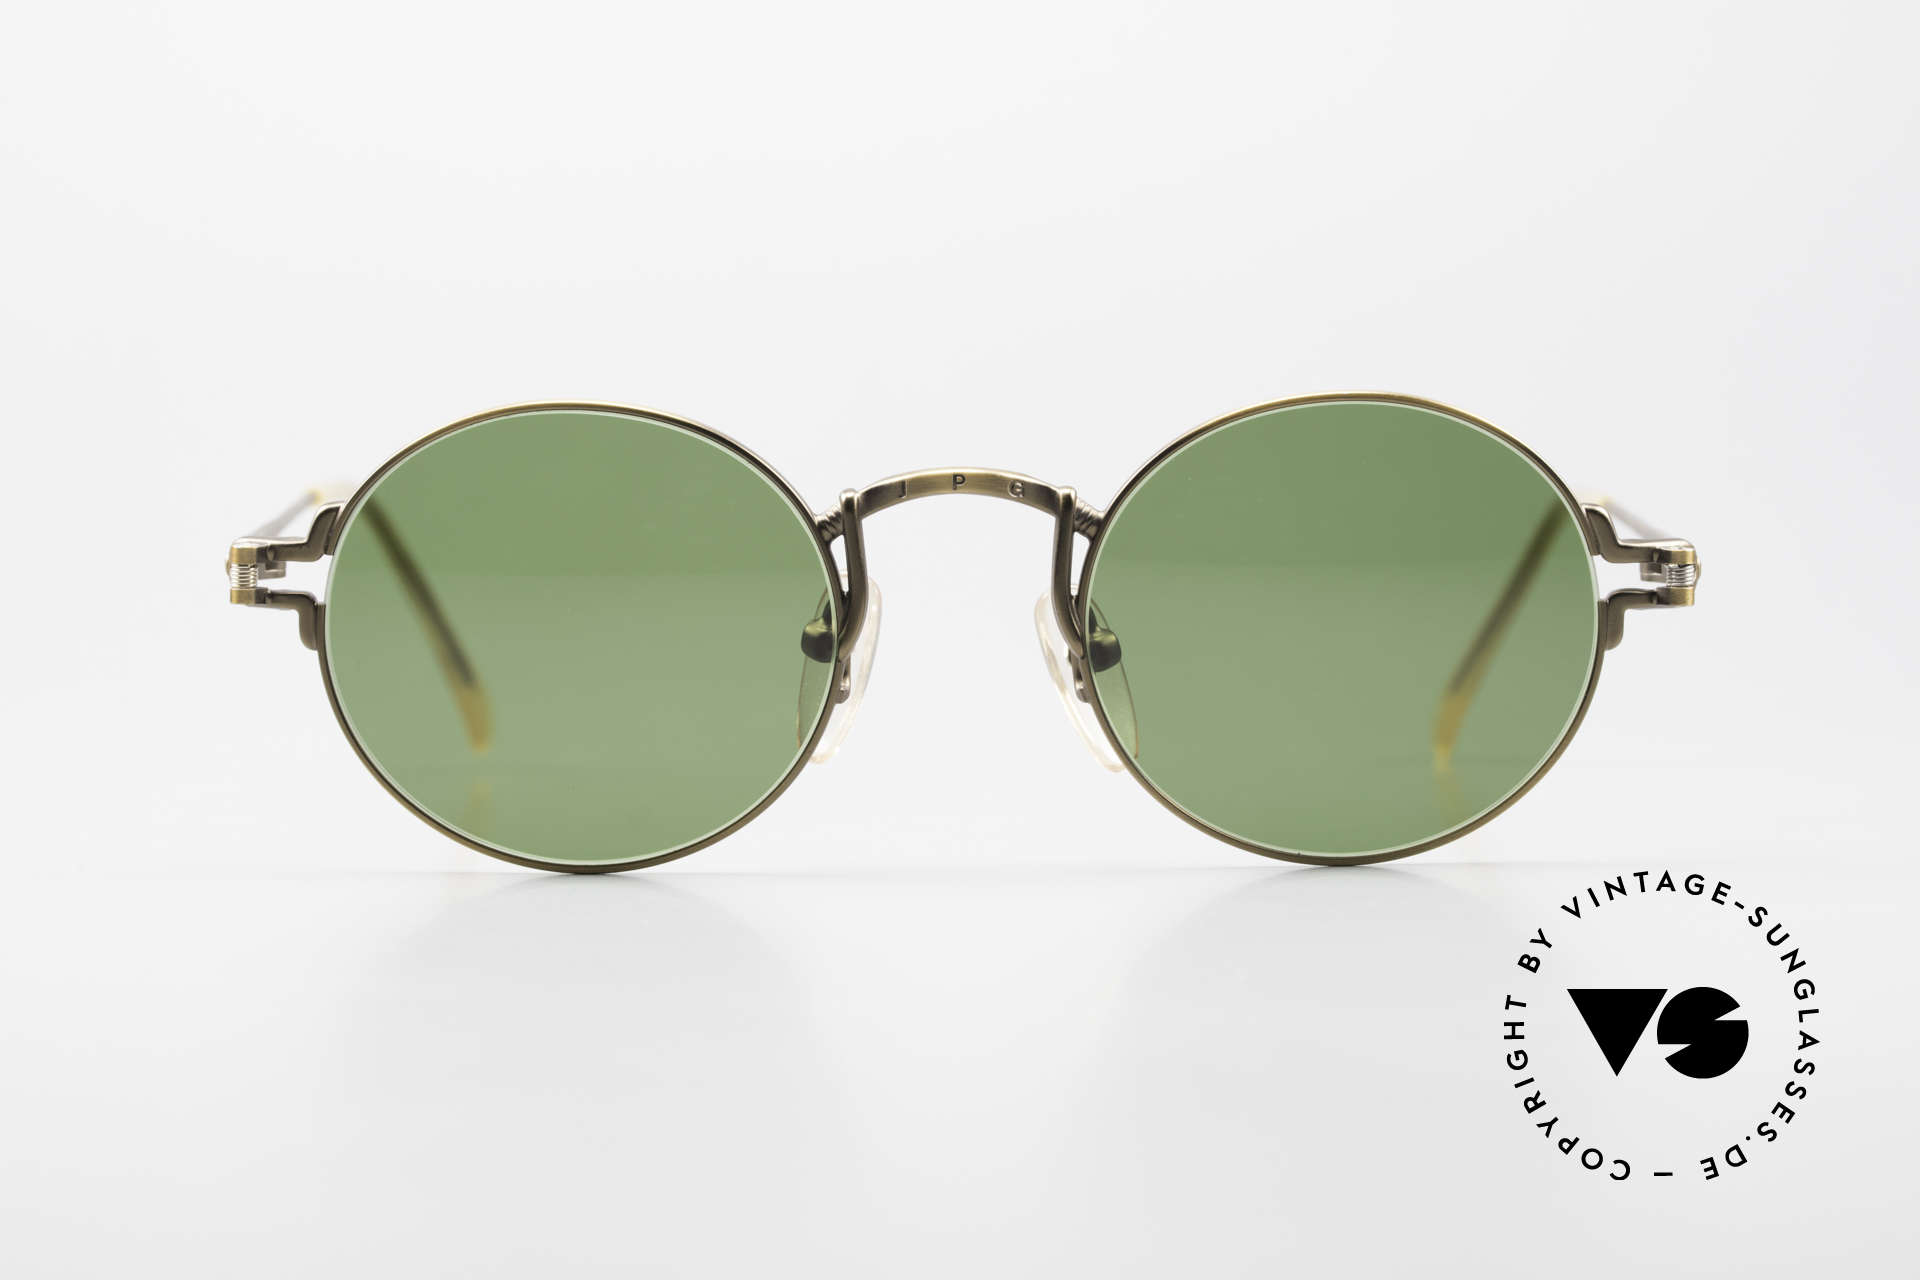 Jean Paul Gaultier 55-3171 Round 90's JPG Sunglasses, a kind of 'John Lennon Style' - just a timeless classic, Made for Men and Women